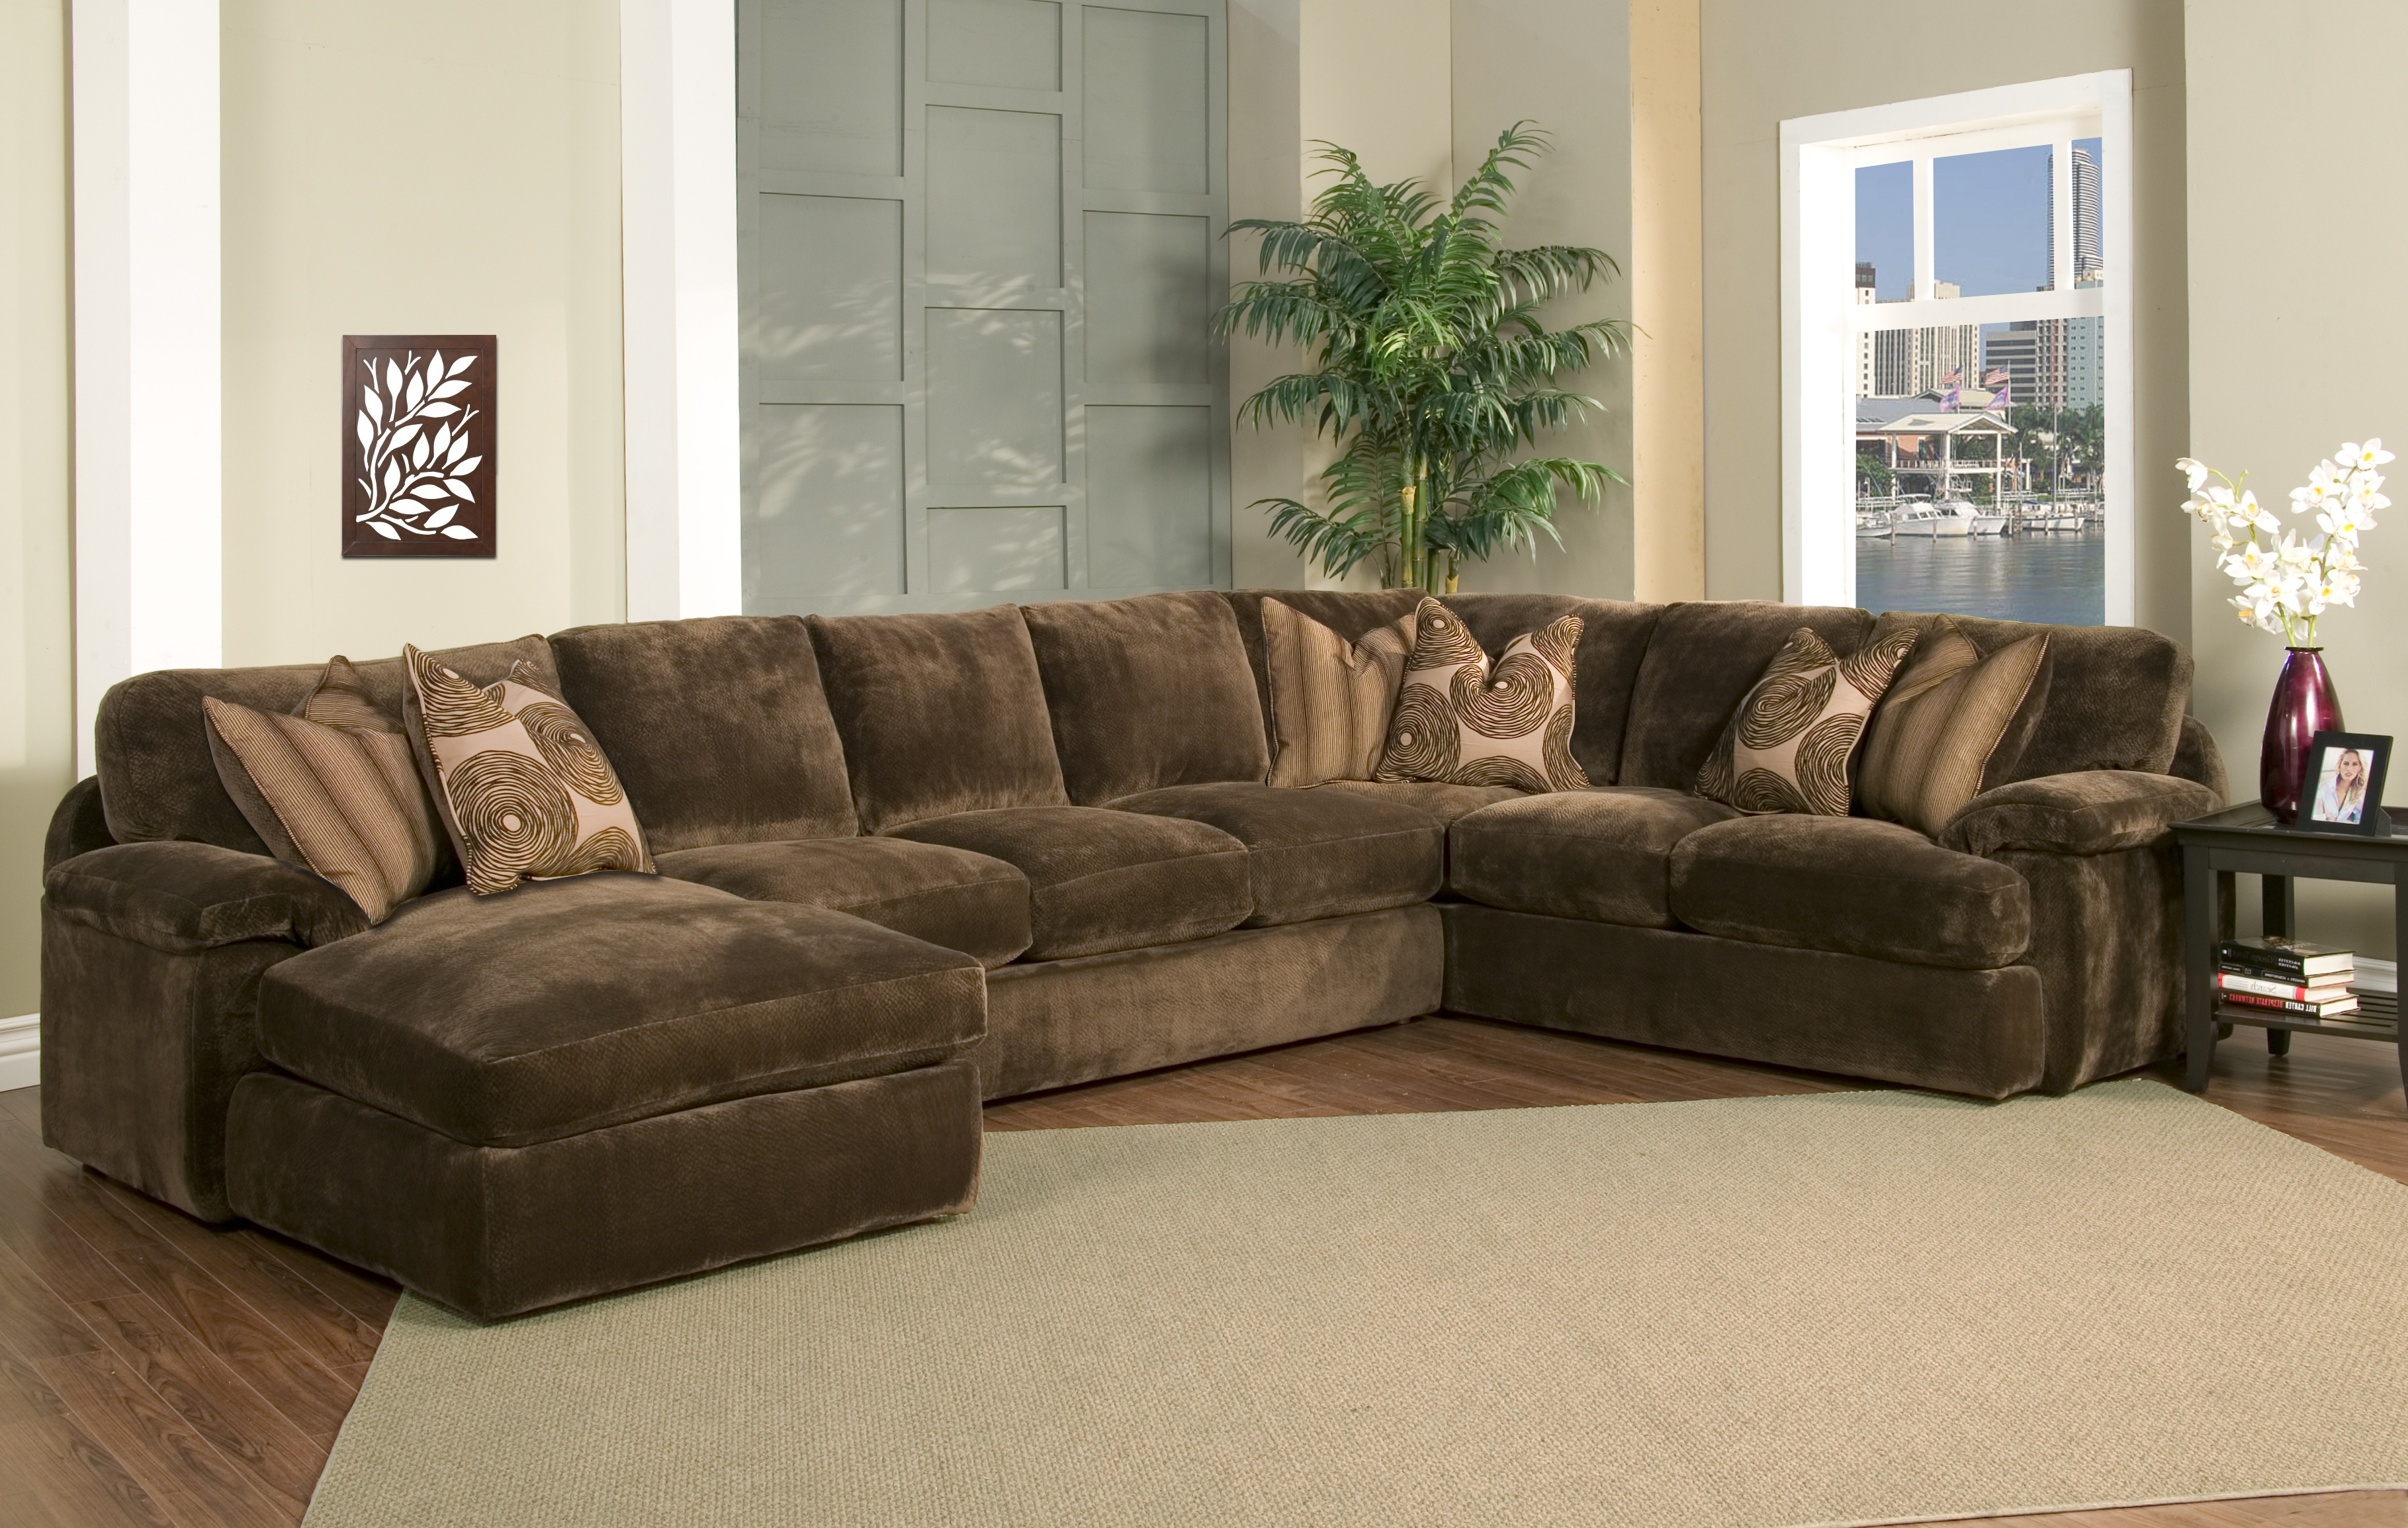 Down Sectional Sofas In Most Up To Date Robert Michaels Sofas And Sectionals (View 4 of 20)